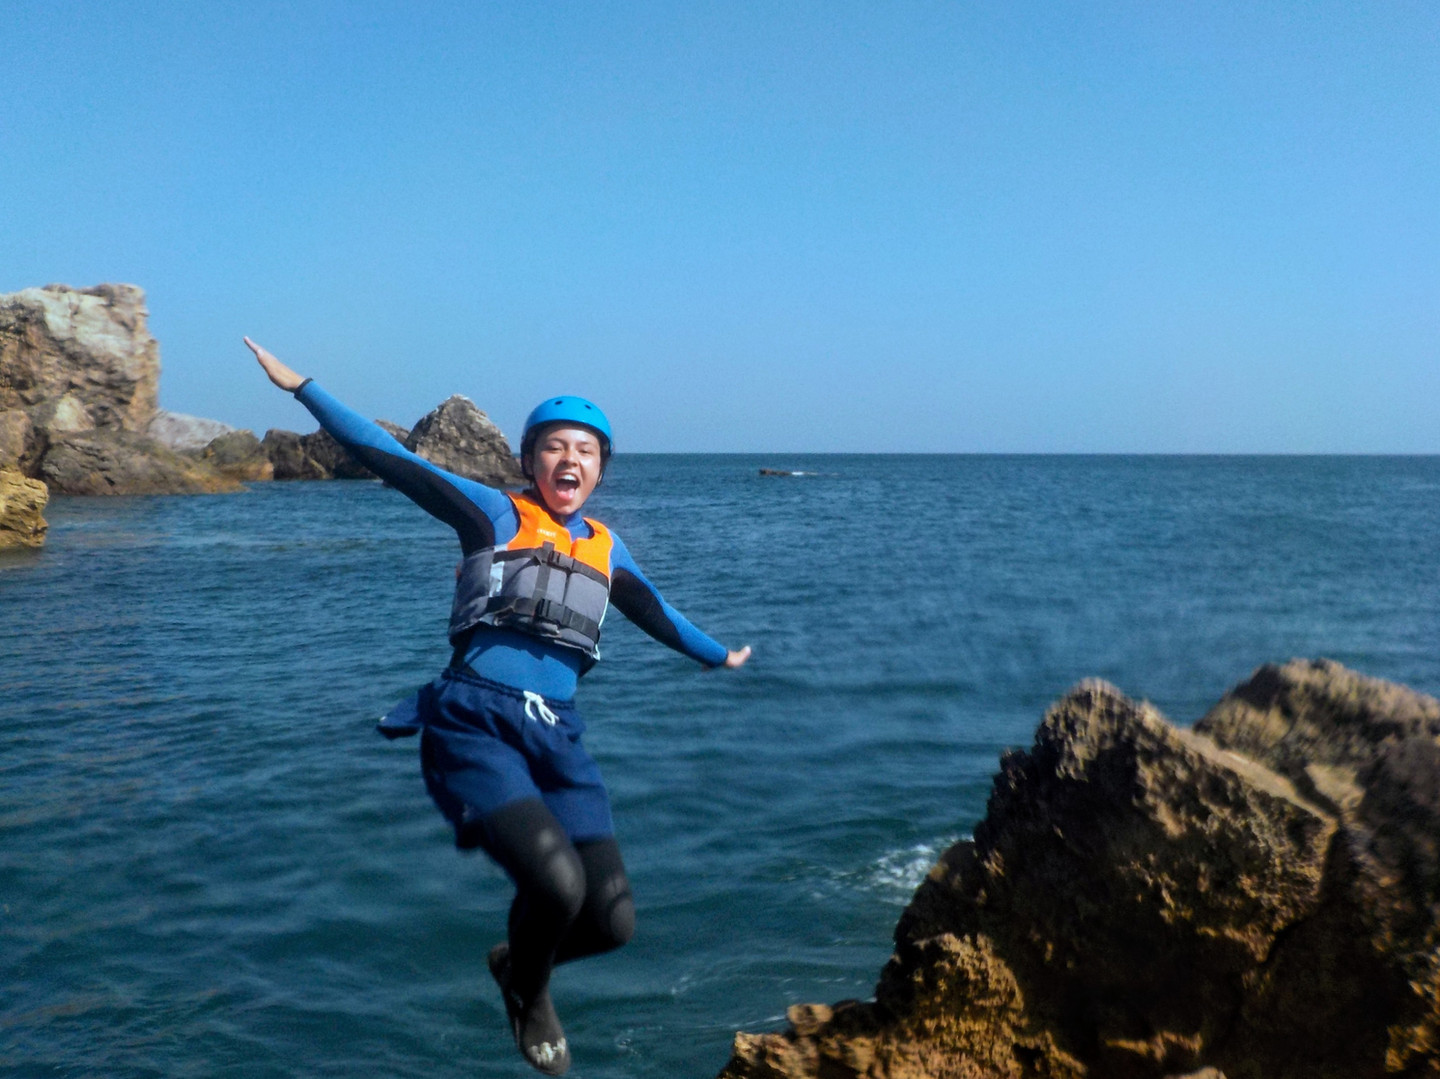 Smilling while spinning off a cliff in Algarve